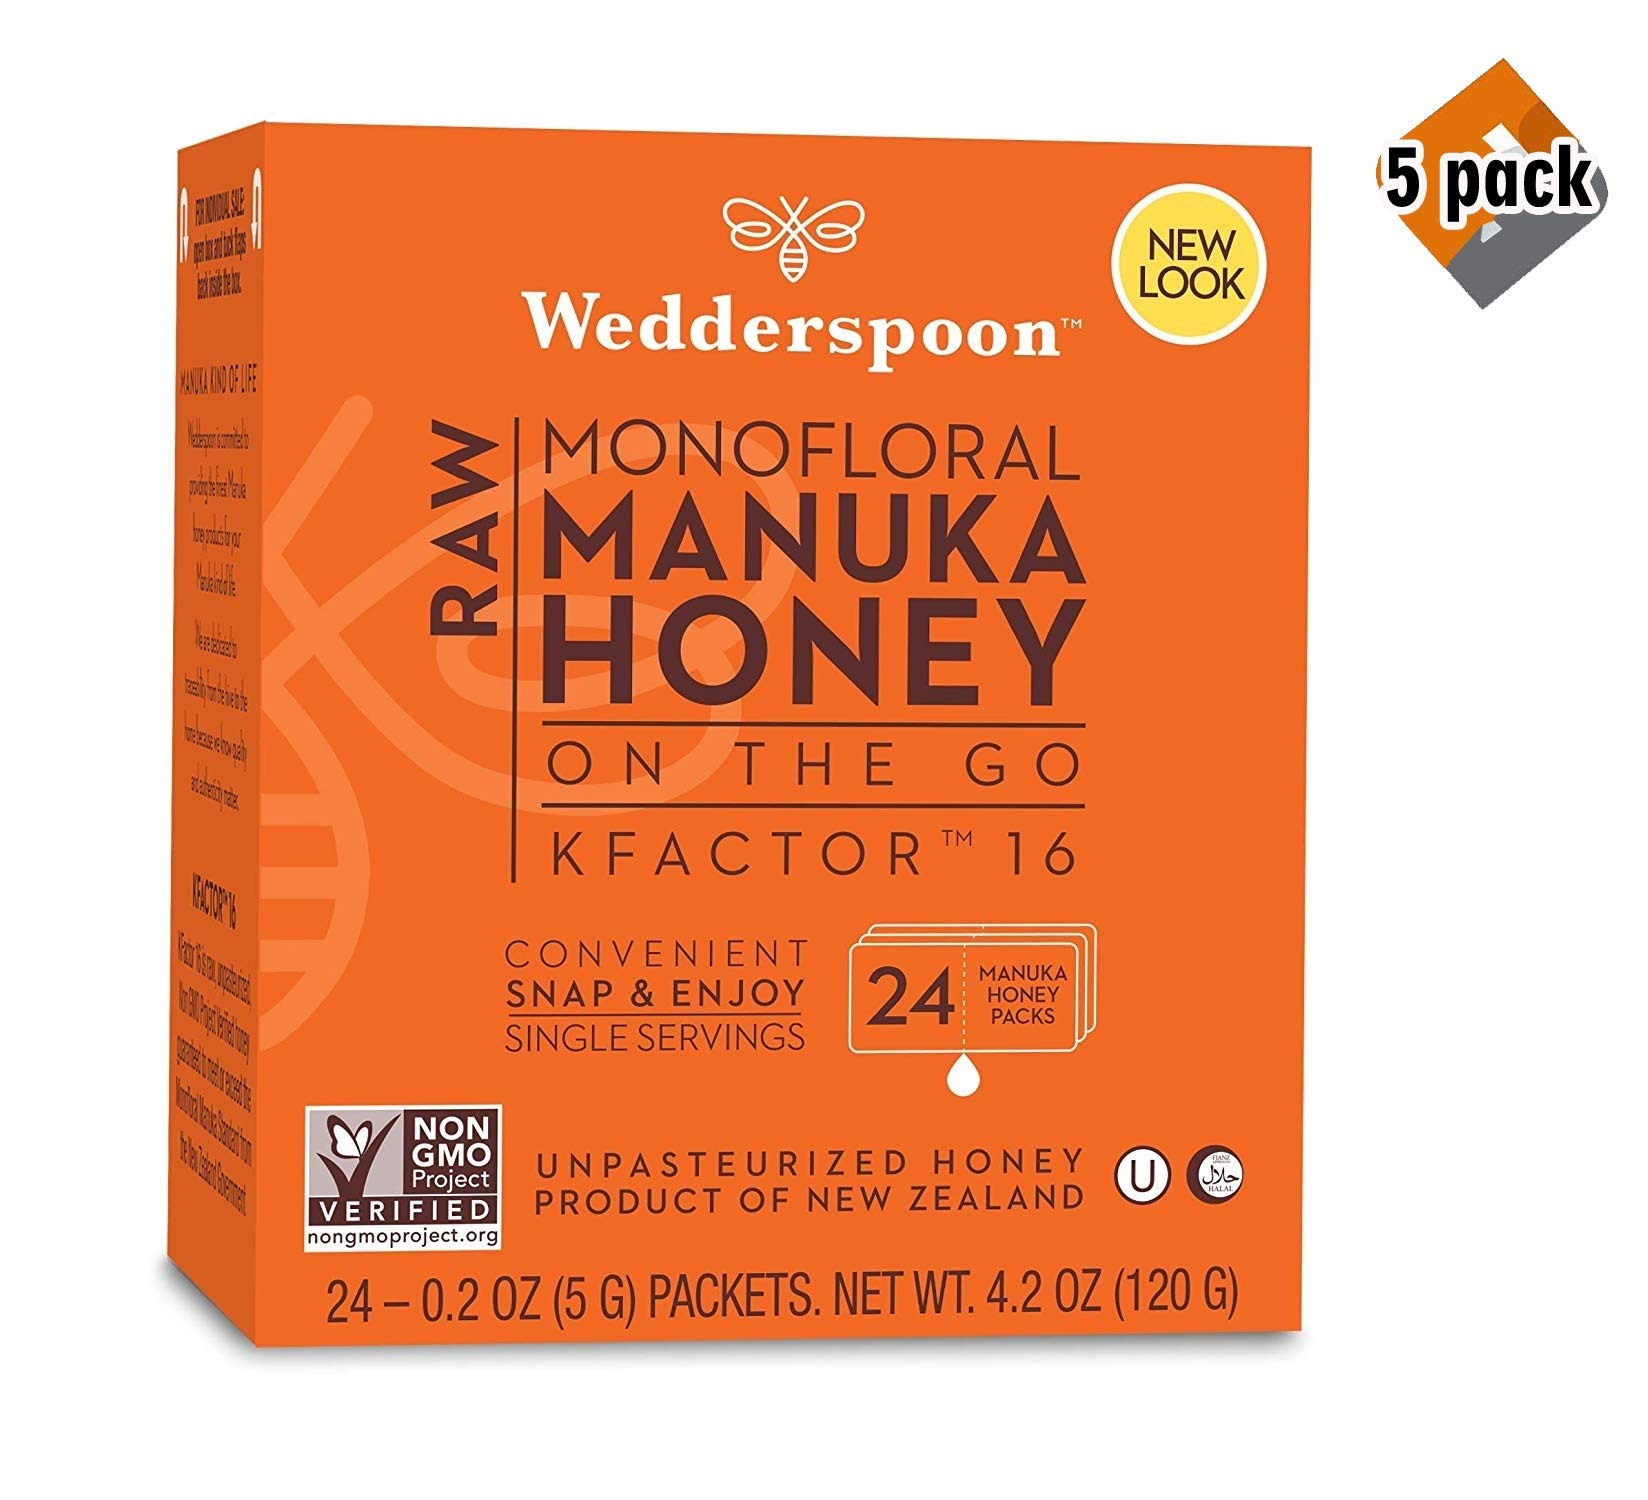 Wedderspoon On The Go Raw Premium Manuka Honey KFactor 16 Packets, 4.0 Oz (24 Count), Unpasteurized, Genuine New Zealand Honey, Multi-Functional, Non-GMO Superfood, 5 Pack